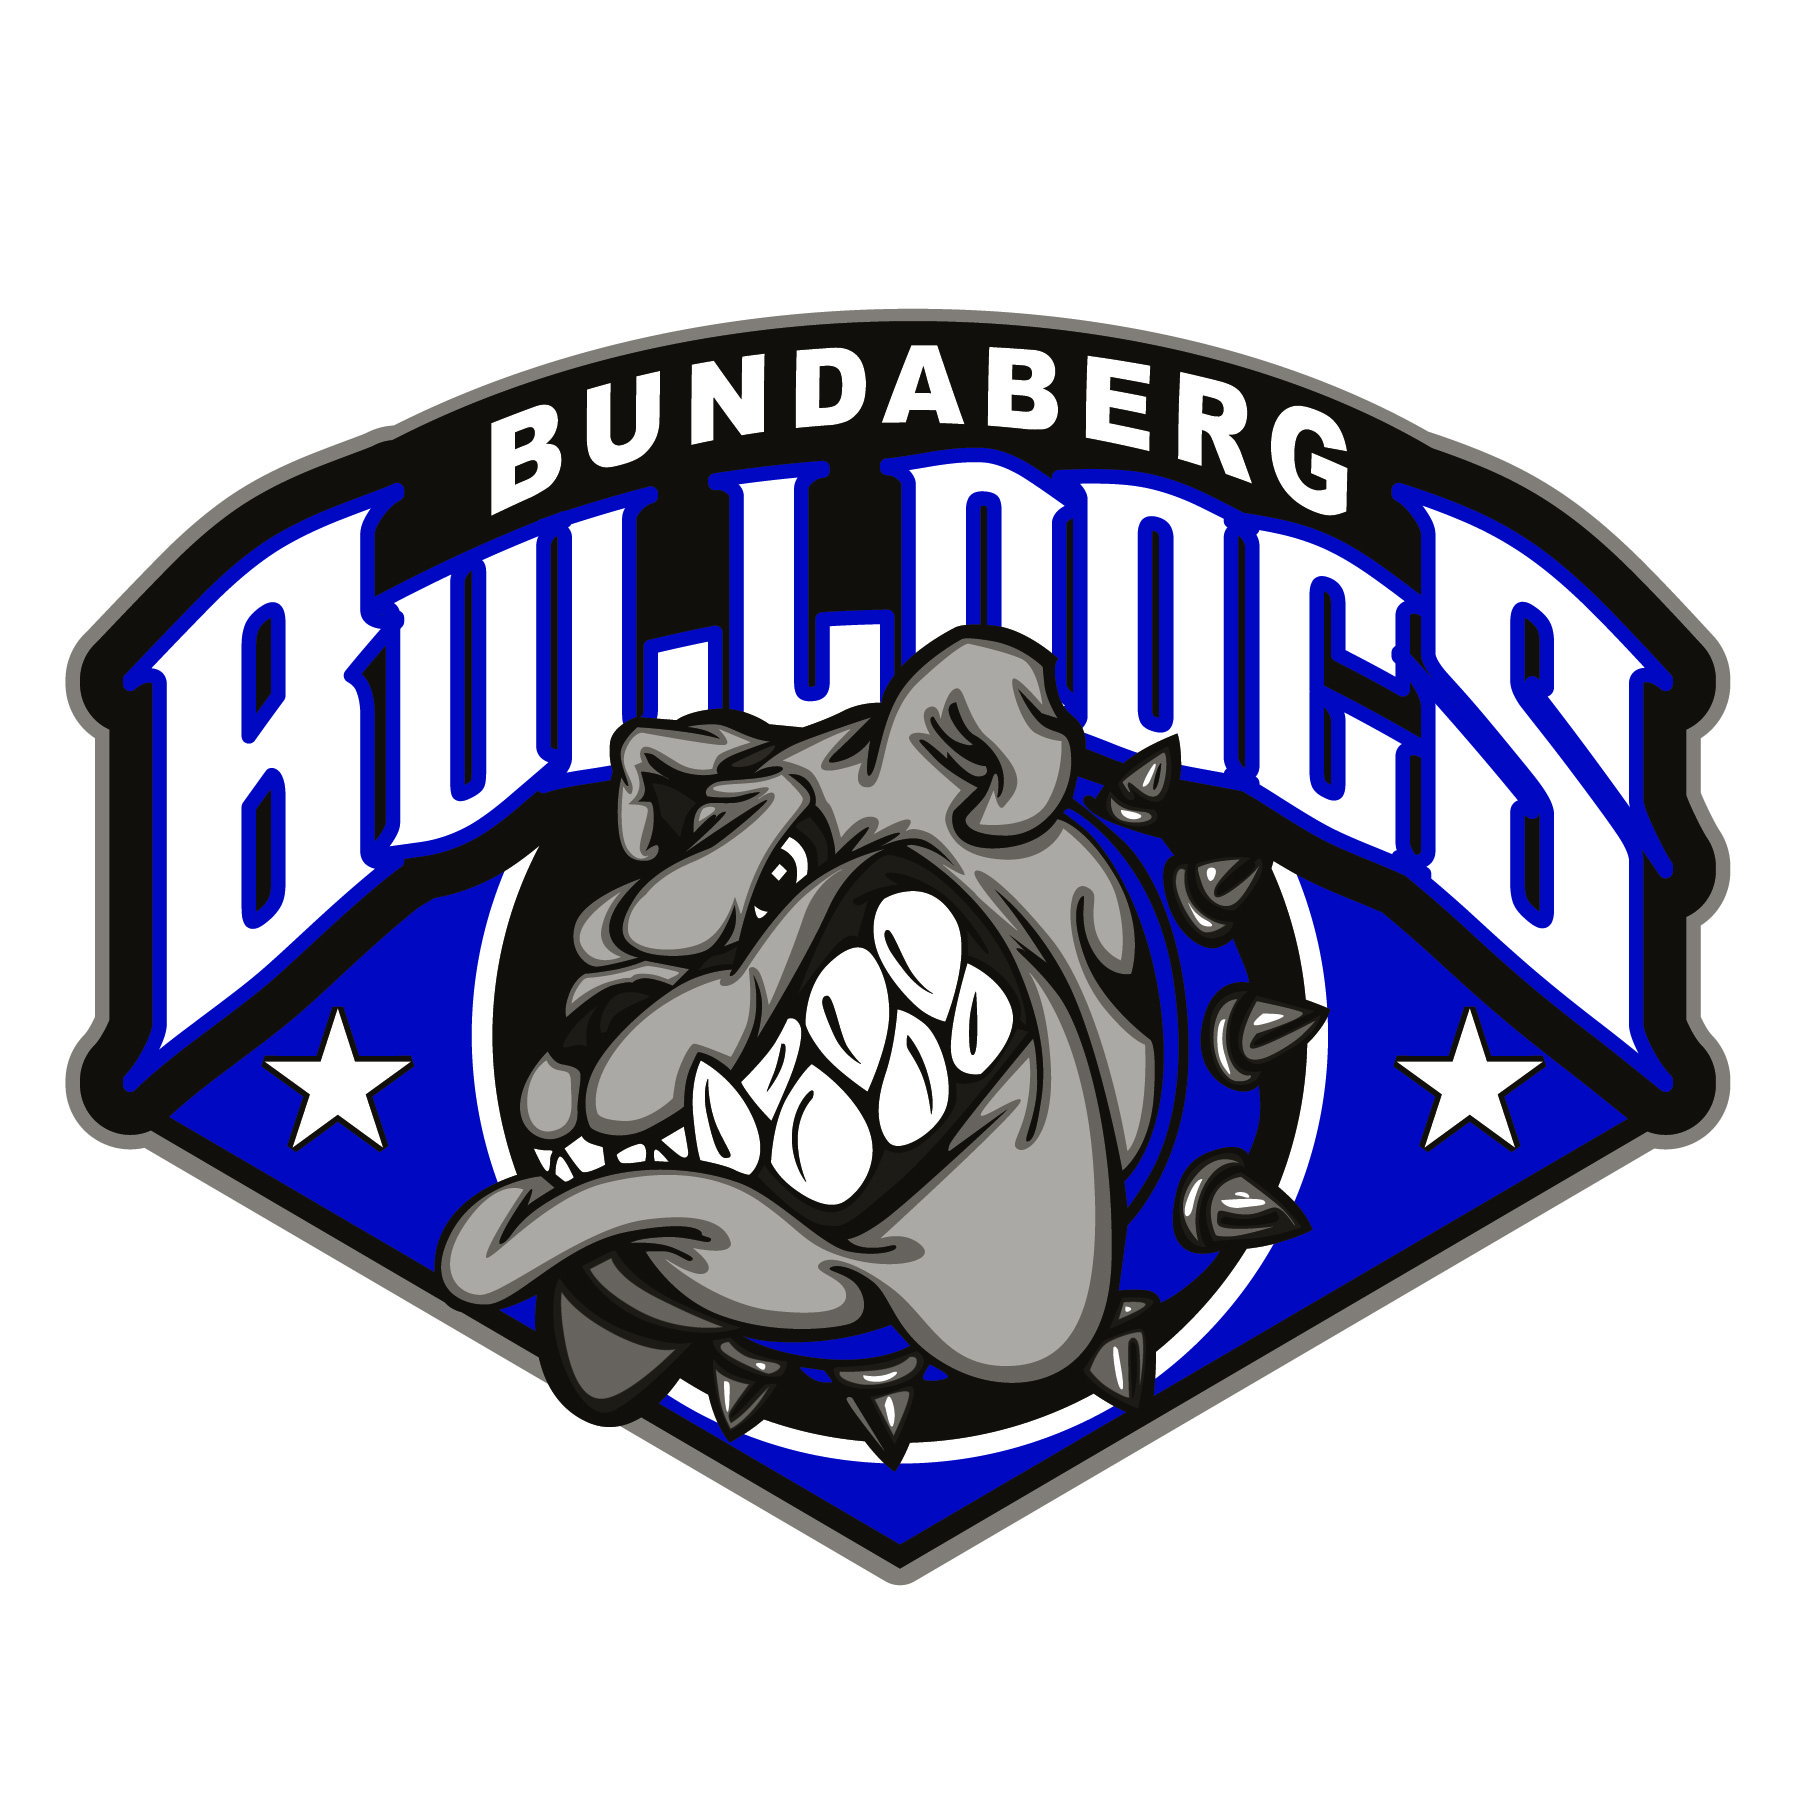 Bundaberg Bulldogs